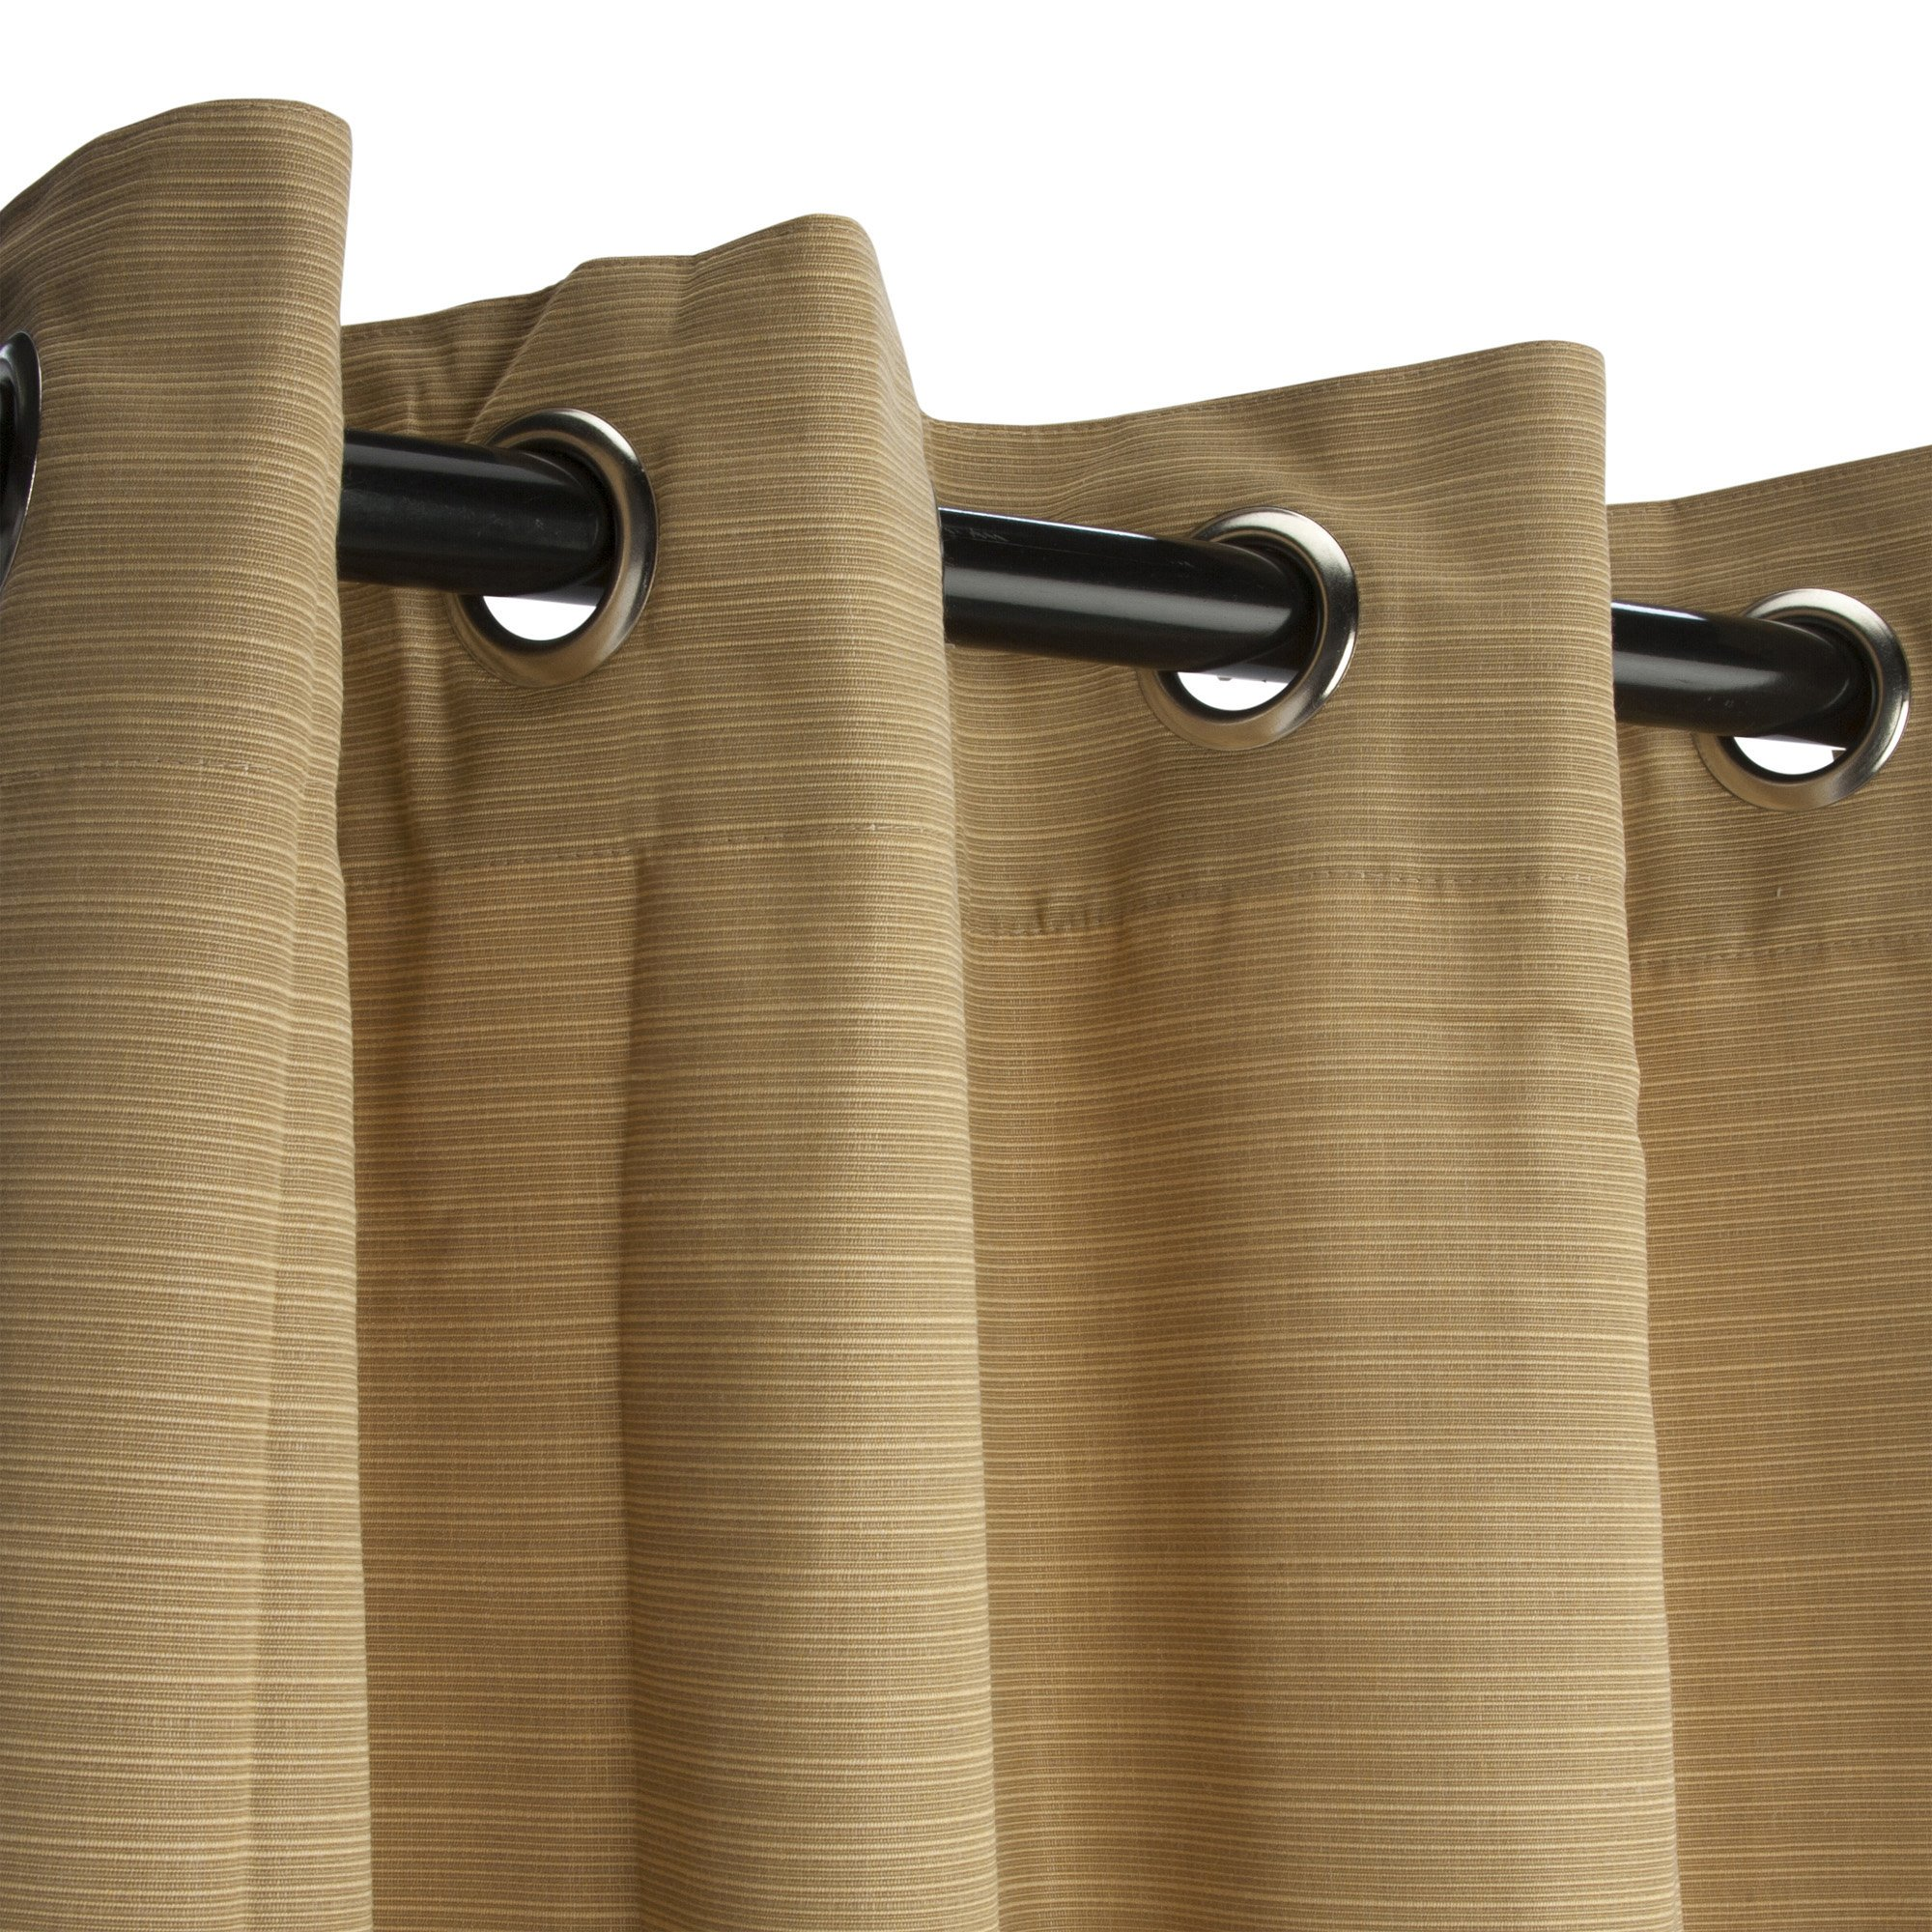 Sunbrella Outdoor Curtain Panel, Nickel Grommet Top, 50 by 120 Inch, Dupione Bamboo (Available in Multiple Colors and Sizes) Includes Custom Storage Bag; Perfect For a Patio, Porch, Gazebo,or Pergola